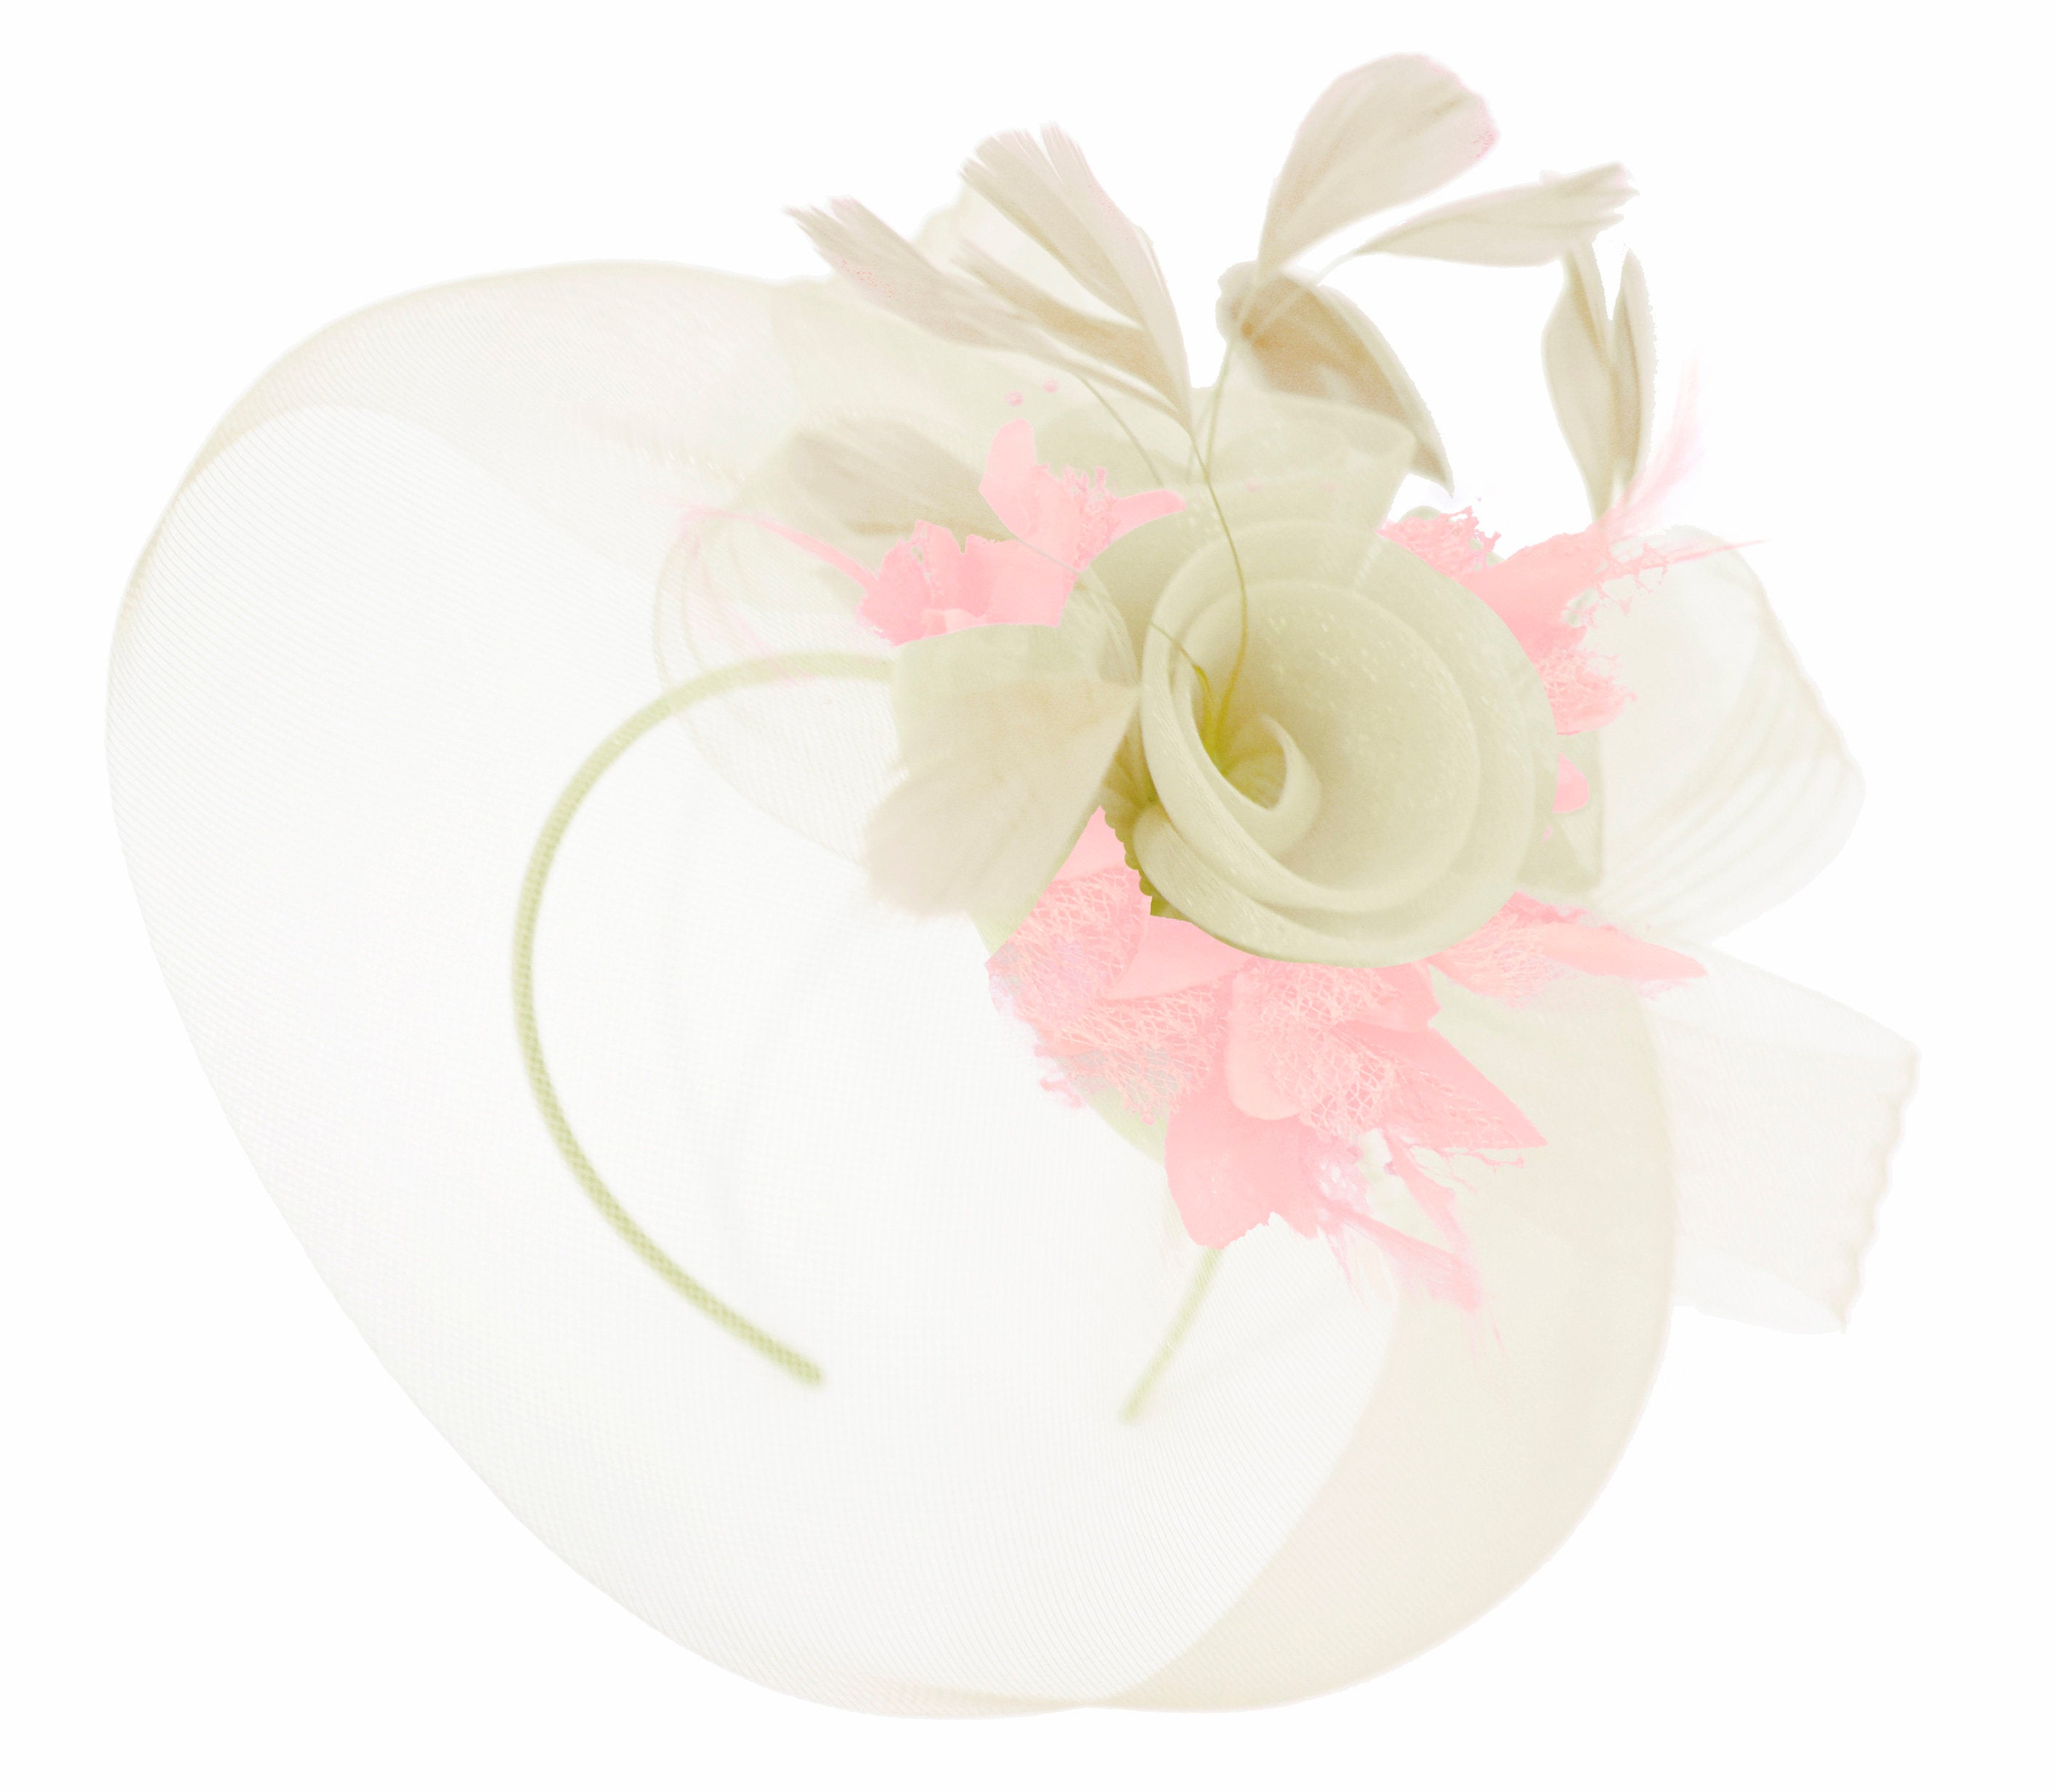 Caprilite Cream and Baby Pink Fascinator on Headband Veil UK Wedding Ascot Races Hatinator Women